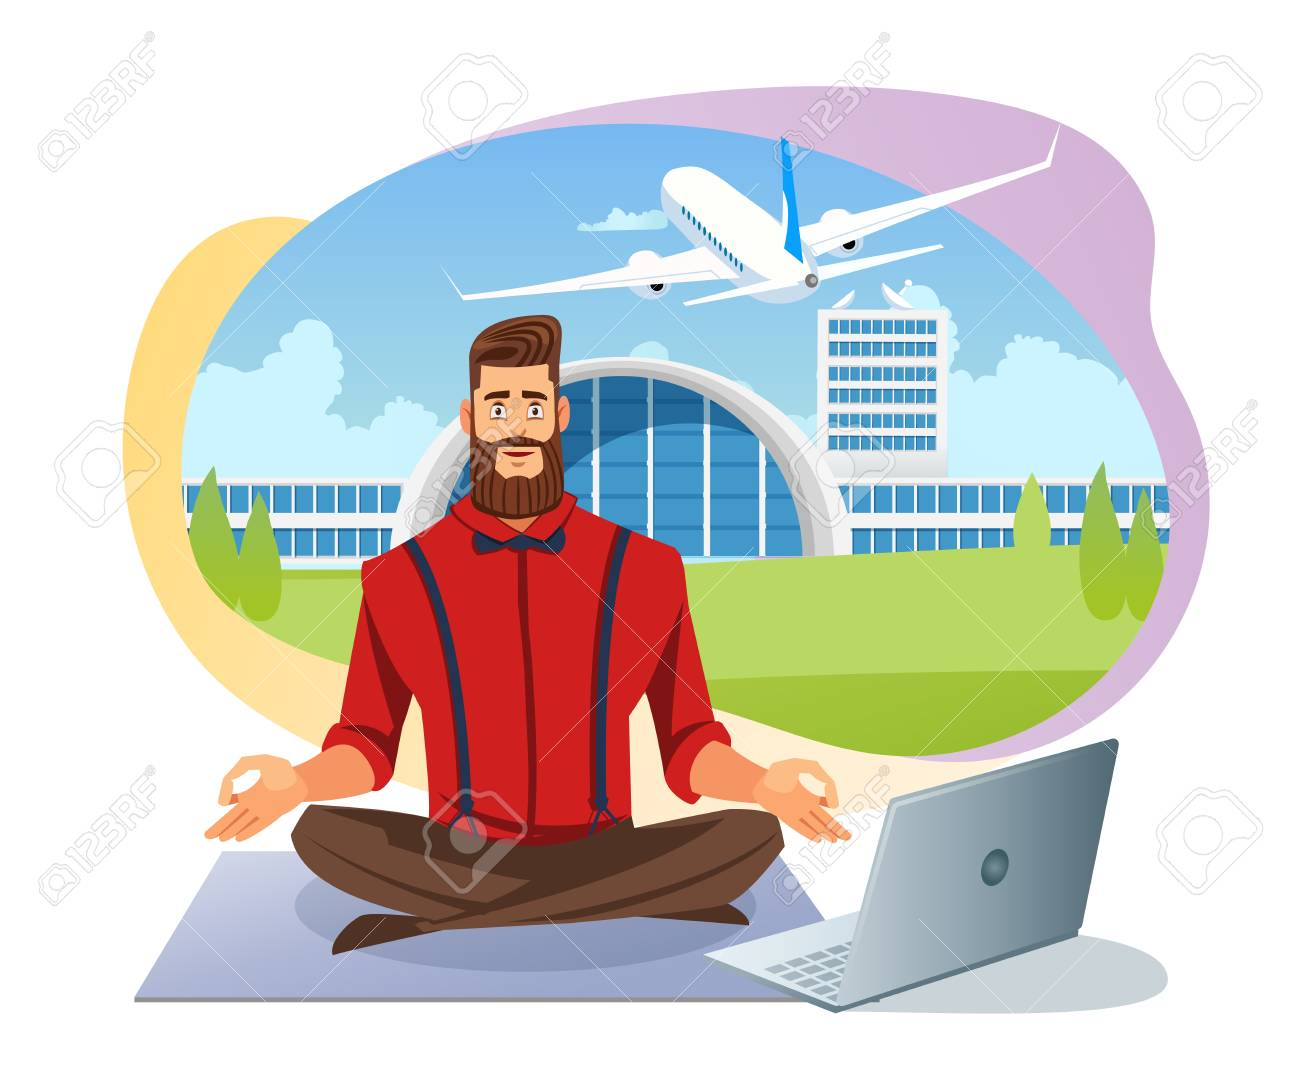 Easy Airline Tickets Booking Flat Vector Concept with Calm Man